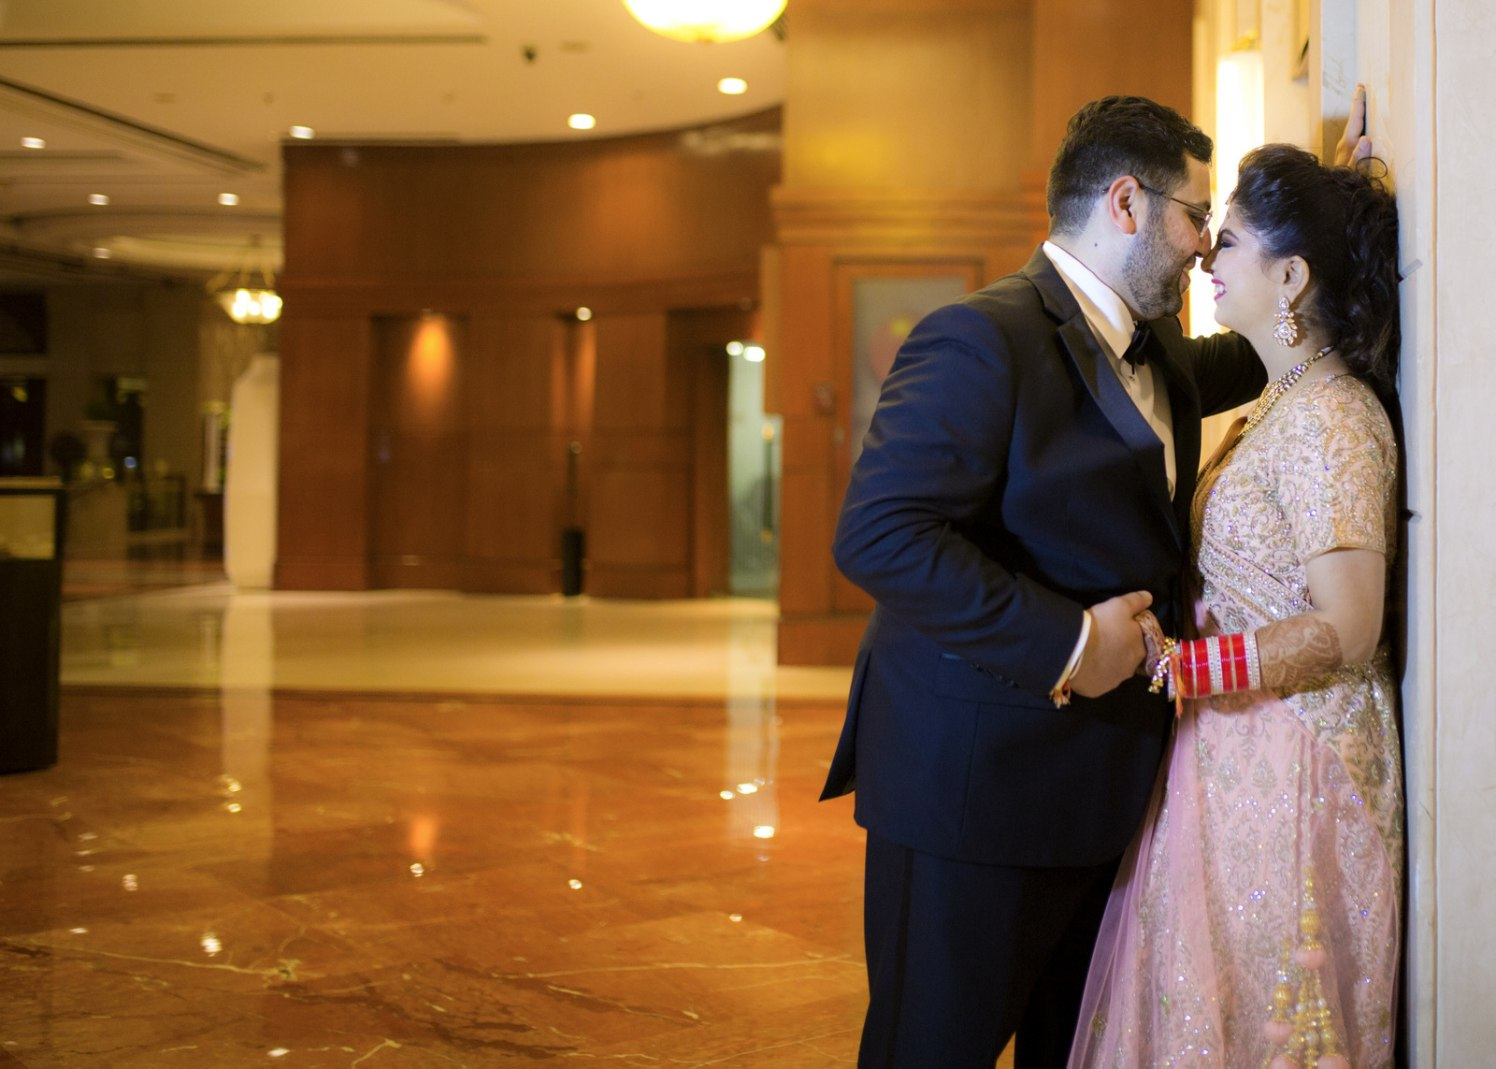 Candid Moments At Wedding Reception by Arpit Gulati Wedding-photography | Weddings Photos & Ideas